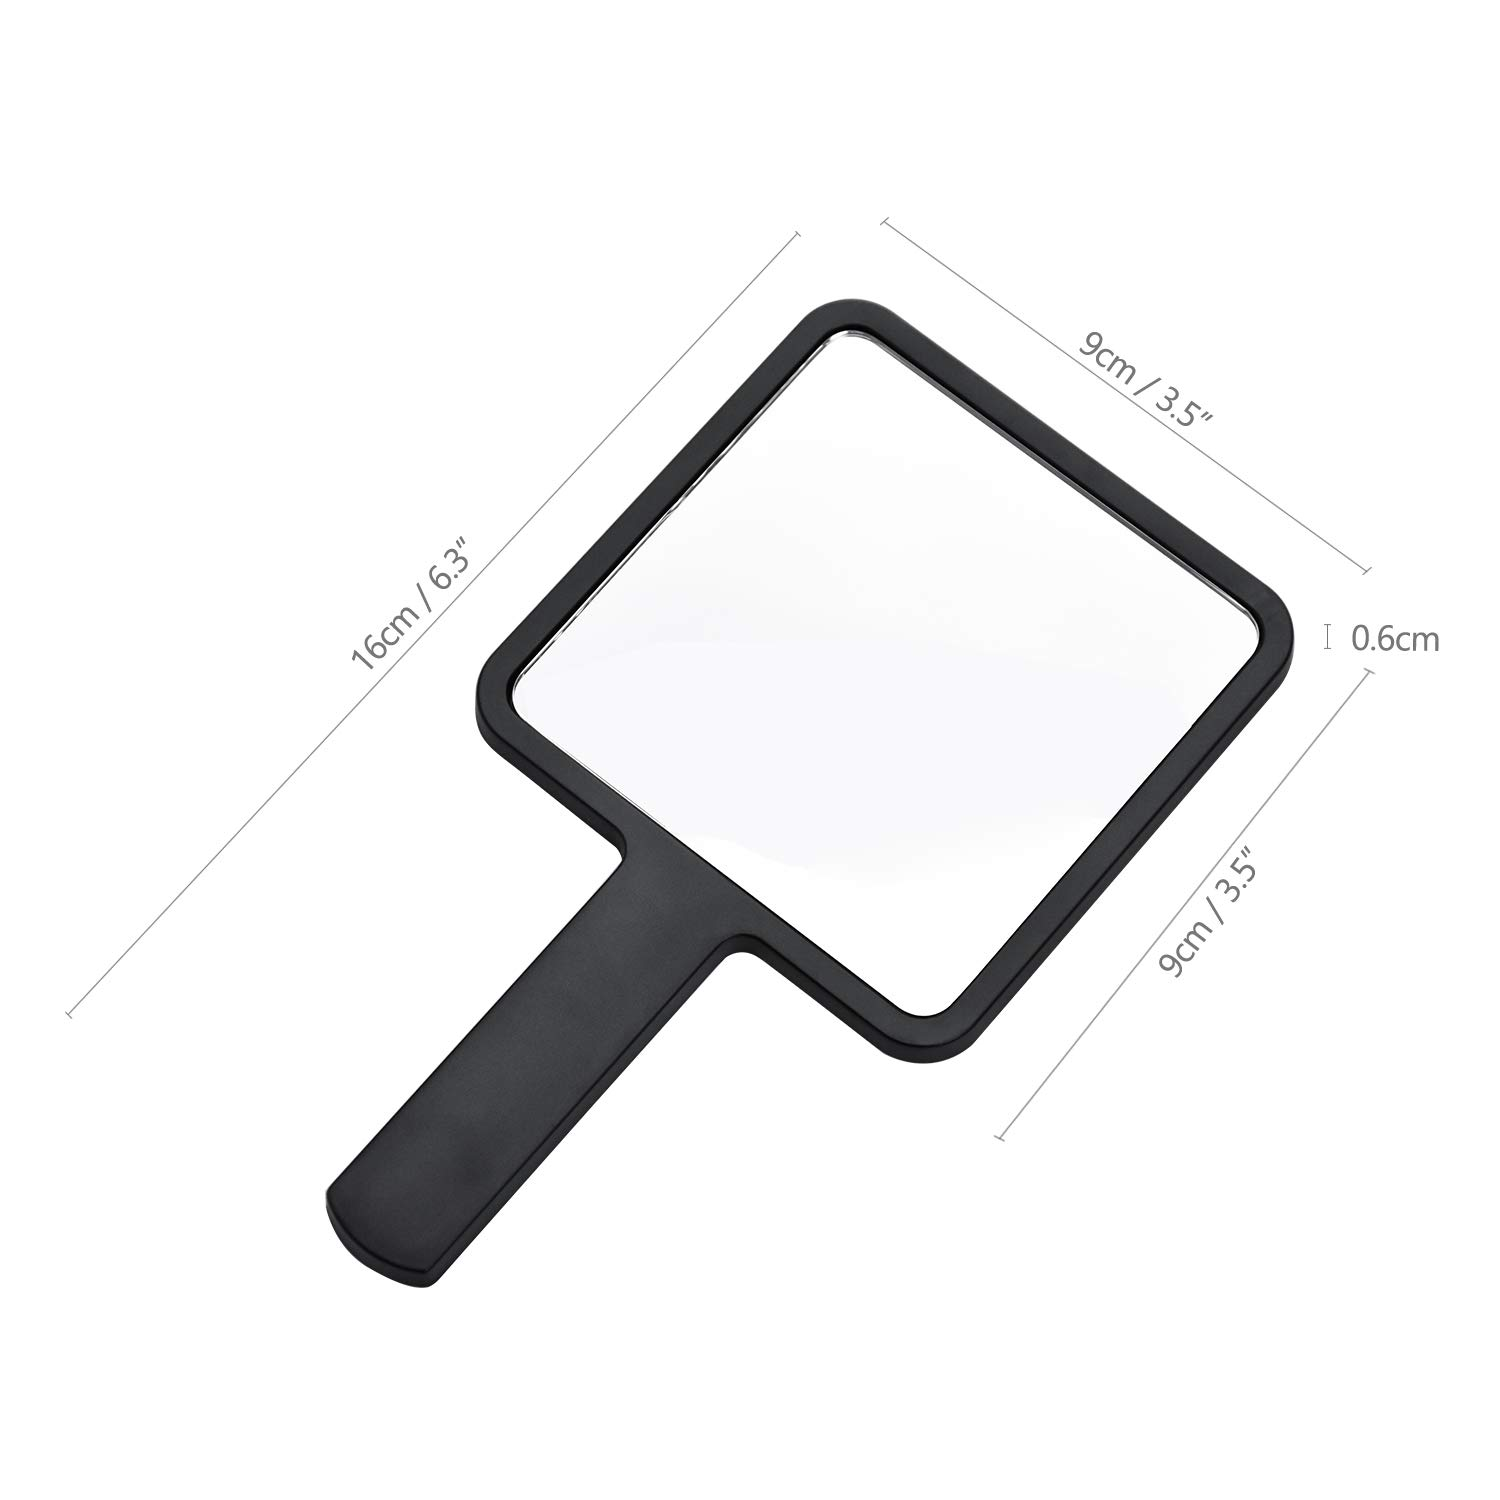 Makeup COCOCITY Hand Mirror with Handle in Black for Hairdressers Salons and Barbers Travel 9 x 16cm Home